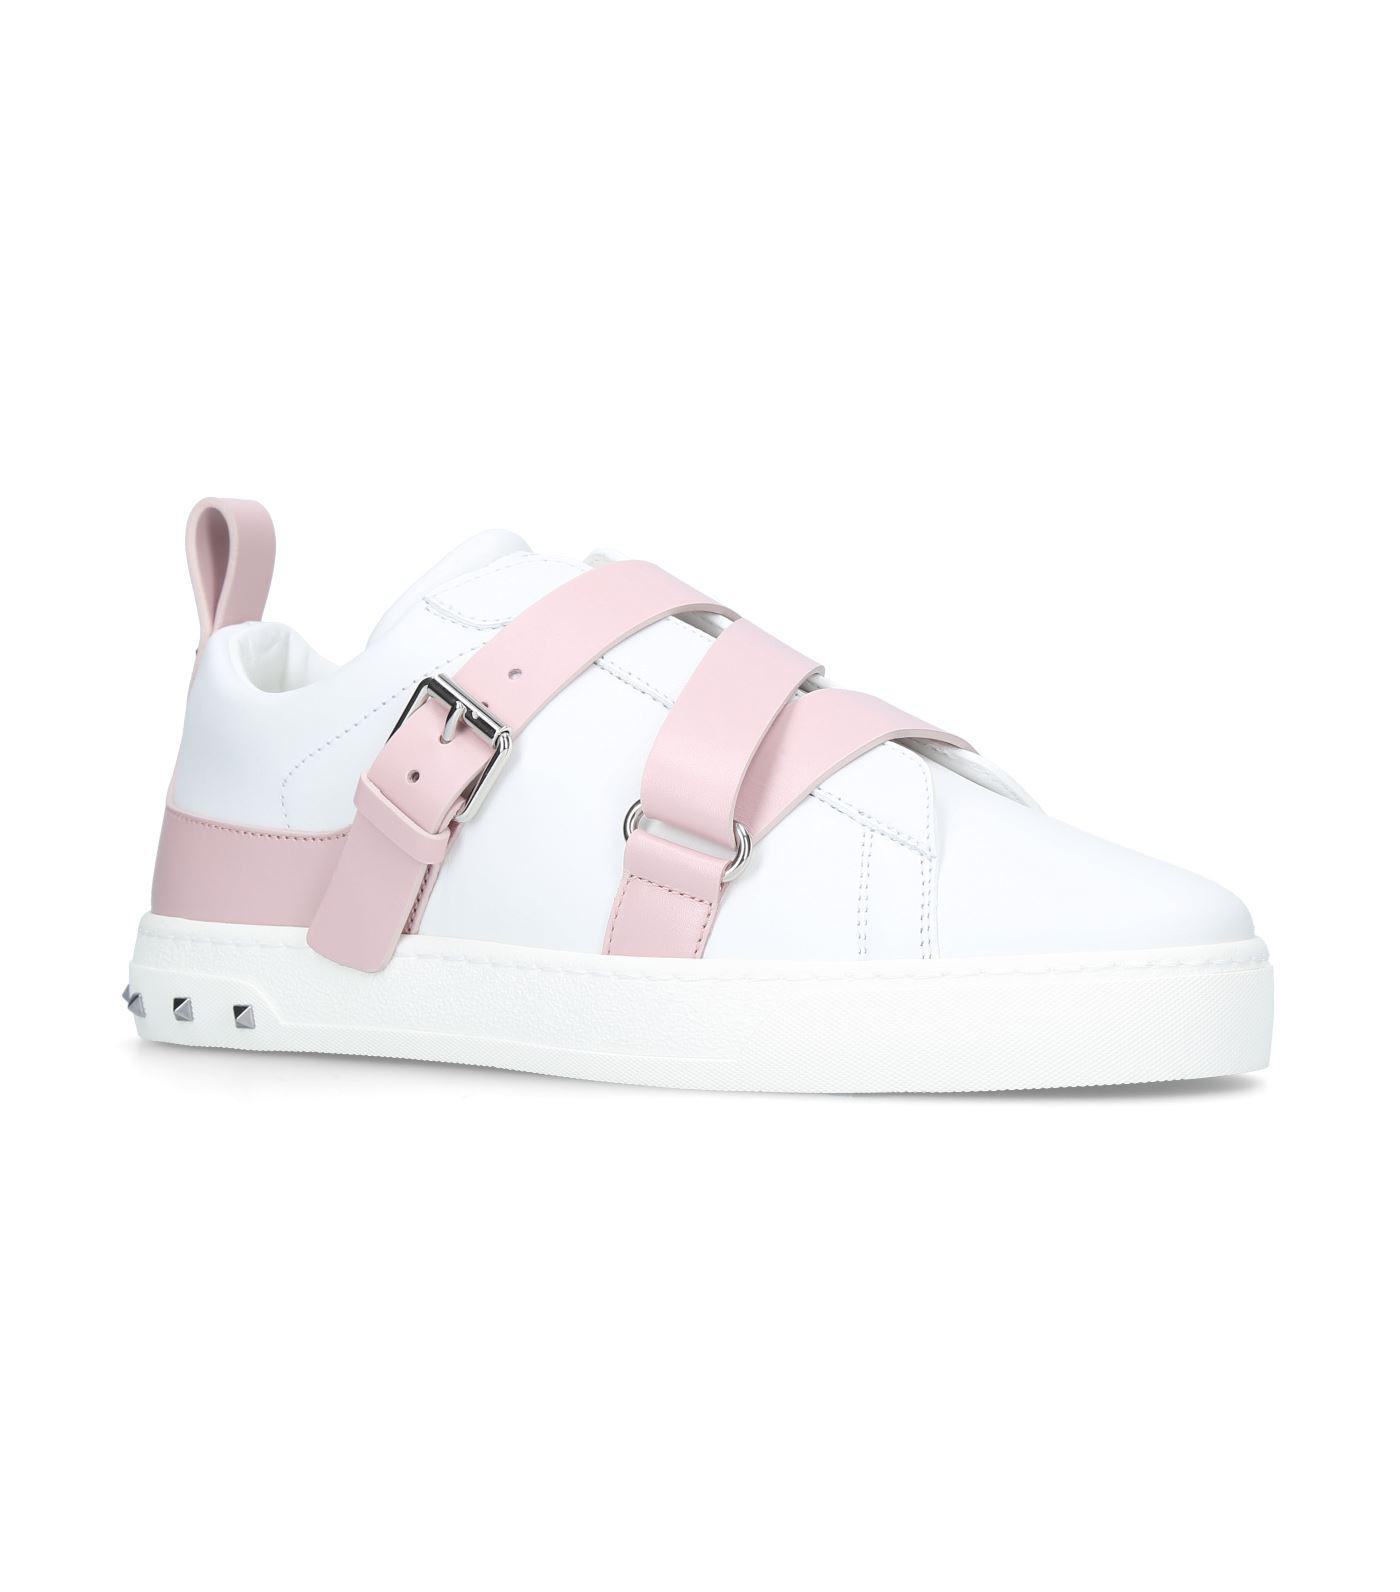 a3b8ac325fe72 Valentino V Punk Low Top Sneakers in Pink - Lyst